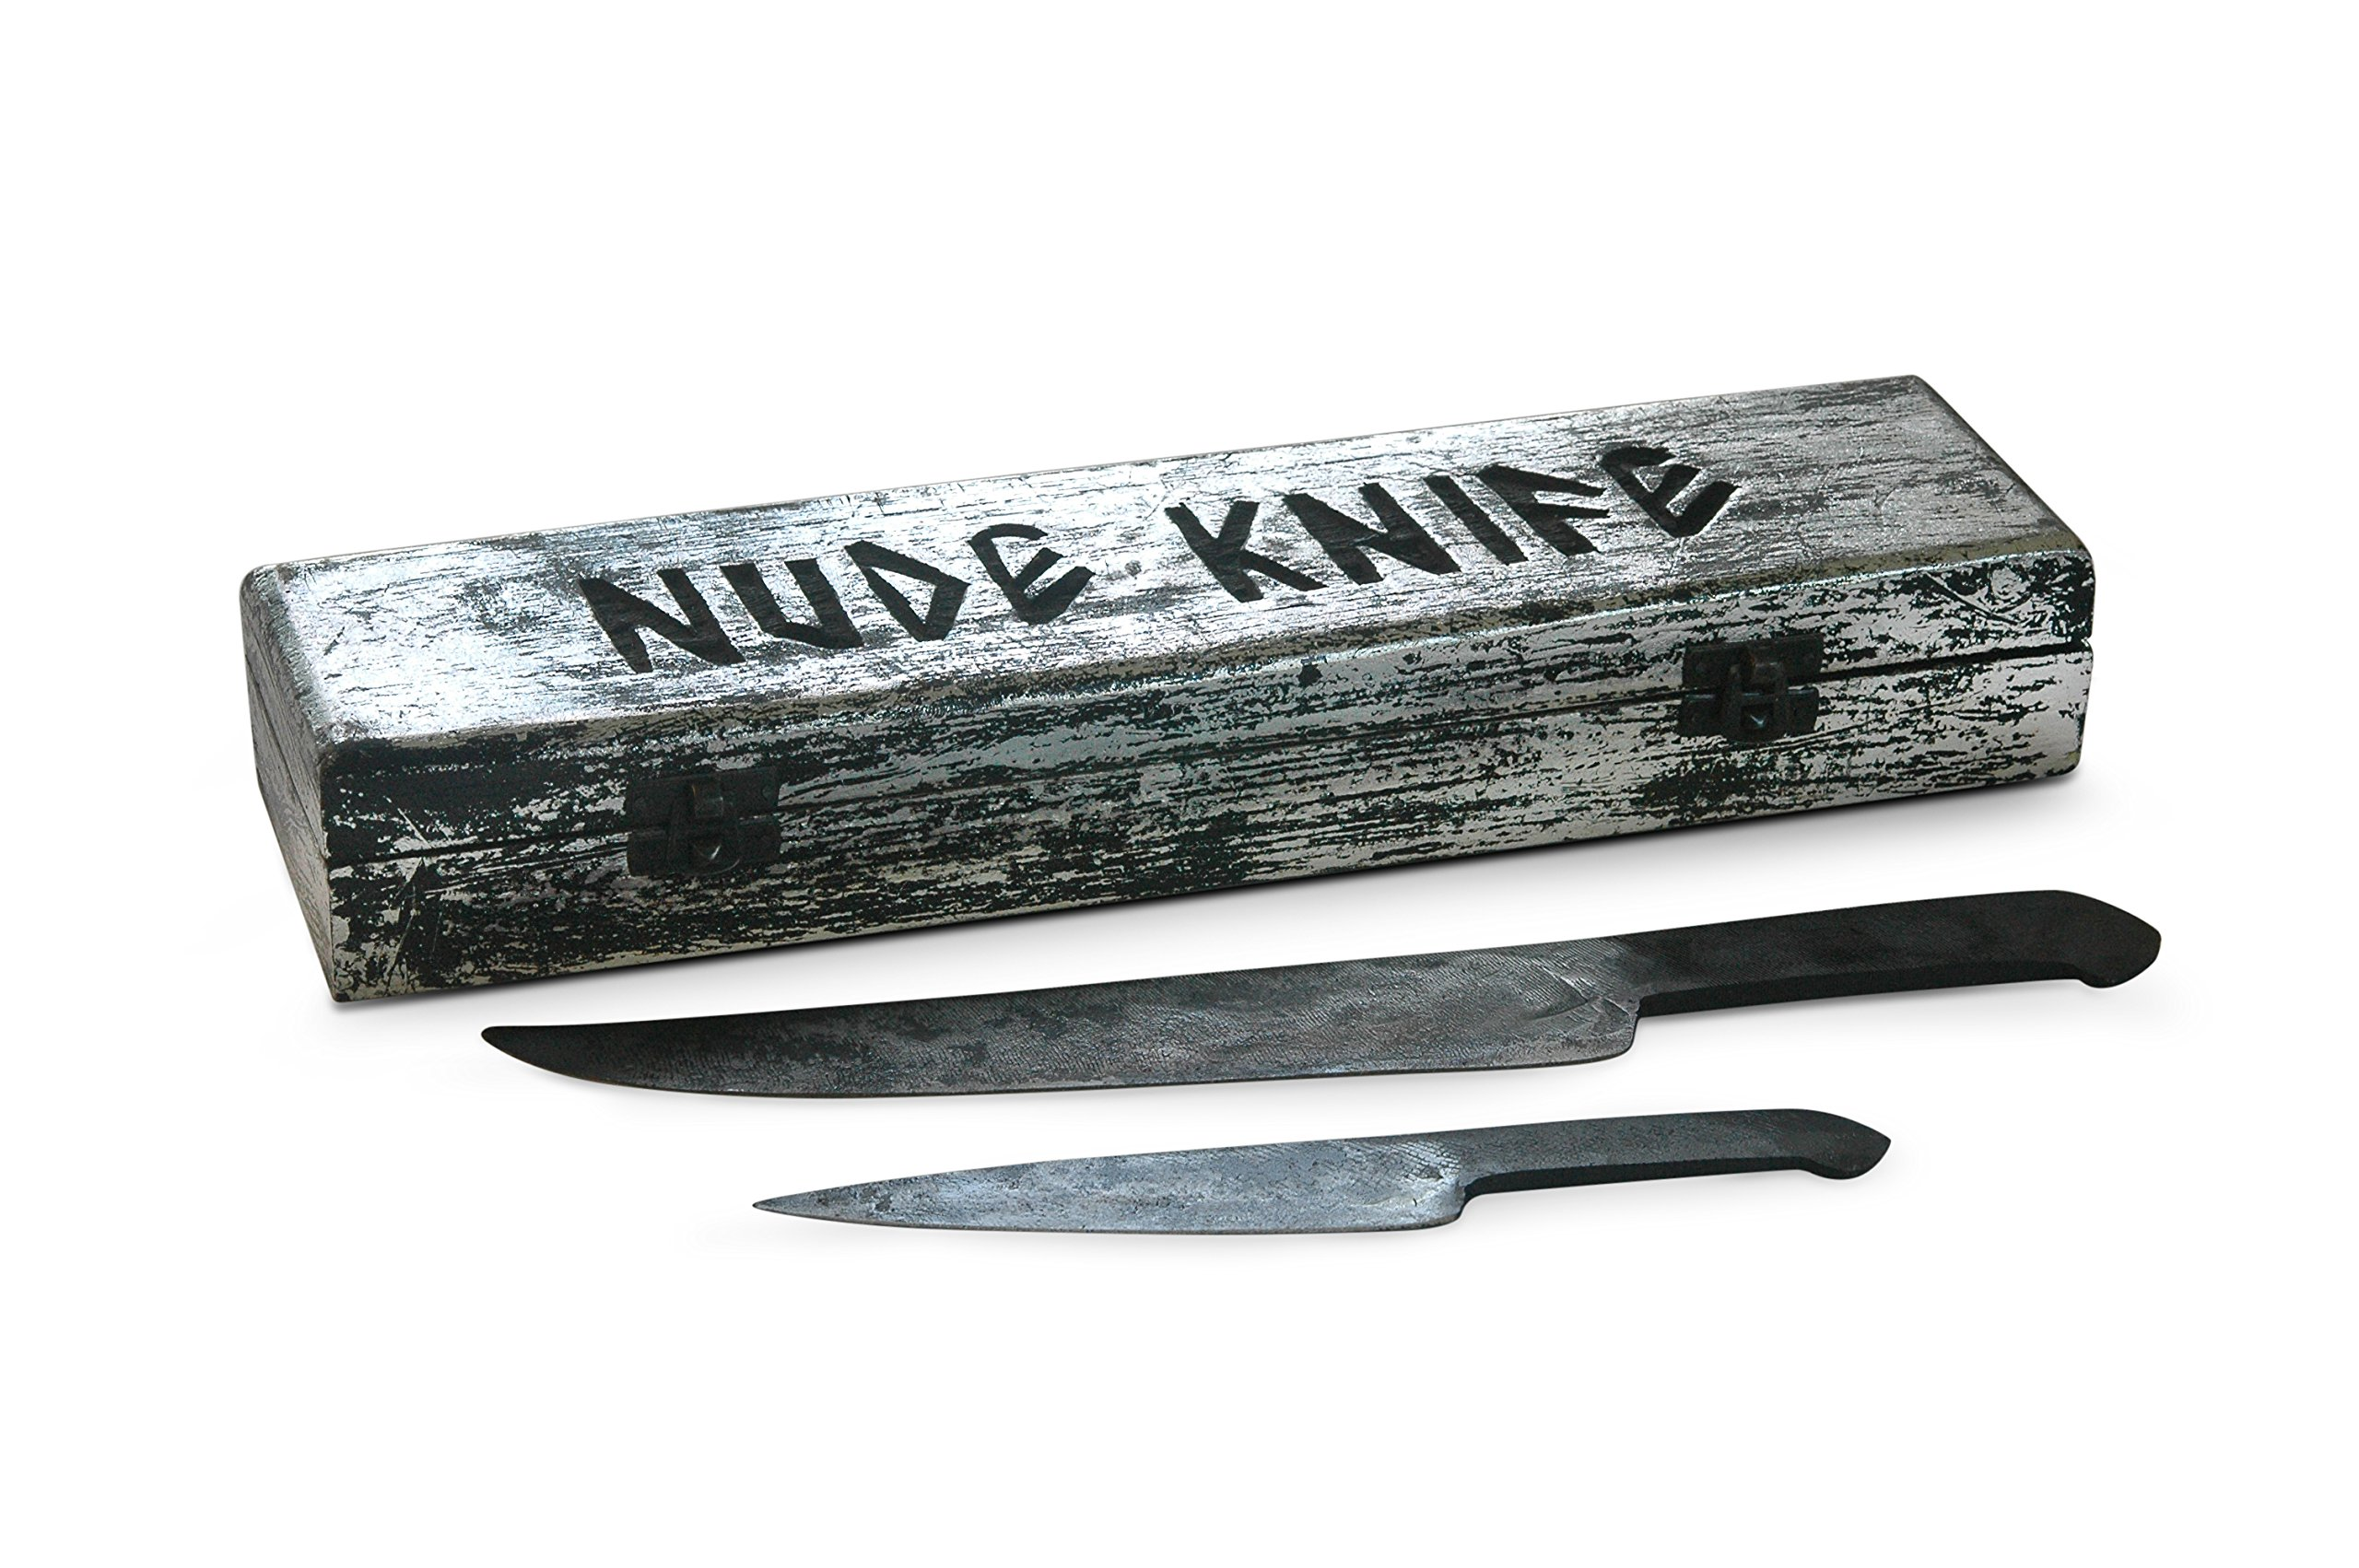 Forged in Fire from Steel File : Nude Knife Set : Cave Man Collection - Natural Shape Fixed Handle Knives. Specialty Carbon Steel Knives for Hunters to Process Carcass, Bushcrafting, Camp Chores